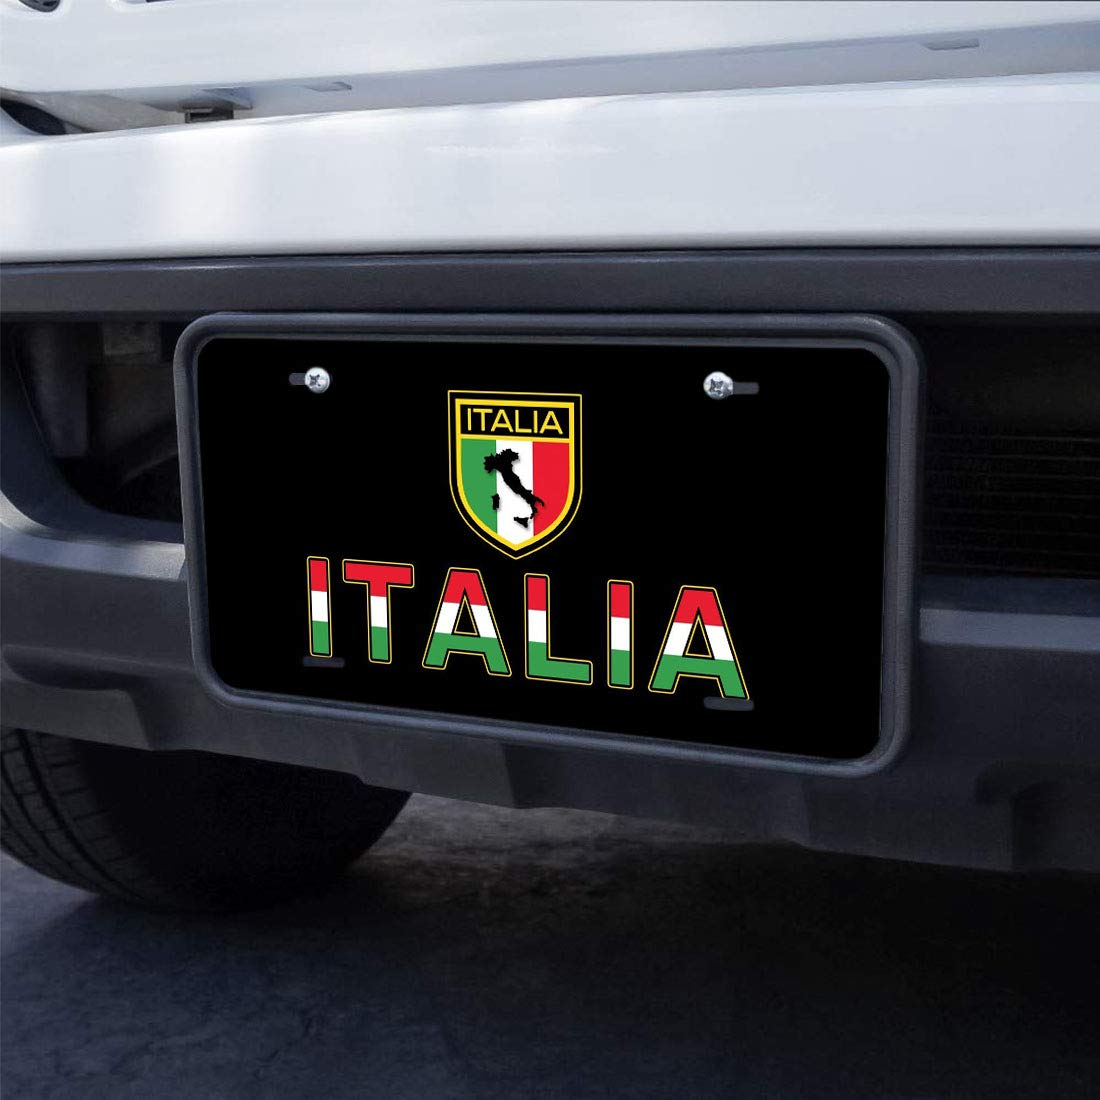 WONDERTIFY License Plate Italy Flag and Italian Letter on The Black Background Decorative Car Front License Plate,Vanity Tag,Metal Car Plate,Aluminum Novelty License Plate,6 X 12 Inch 4 Holes